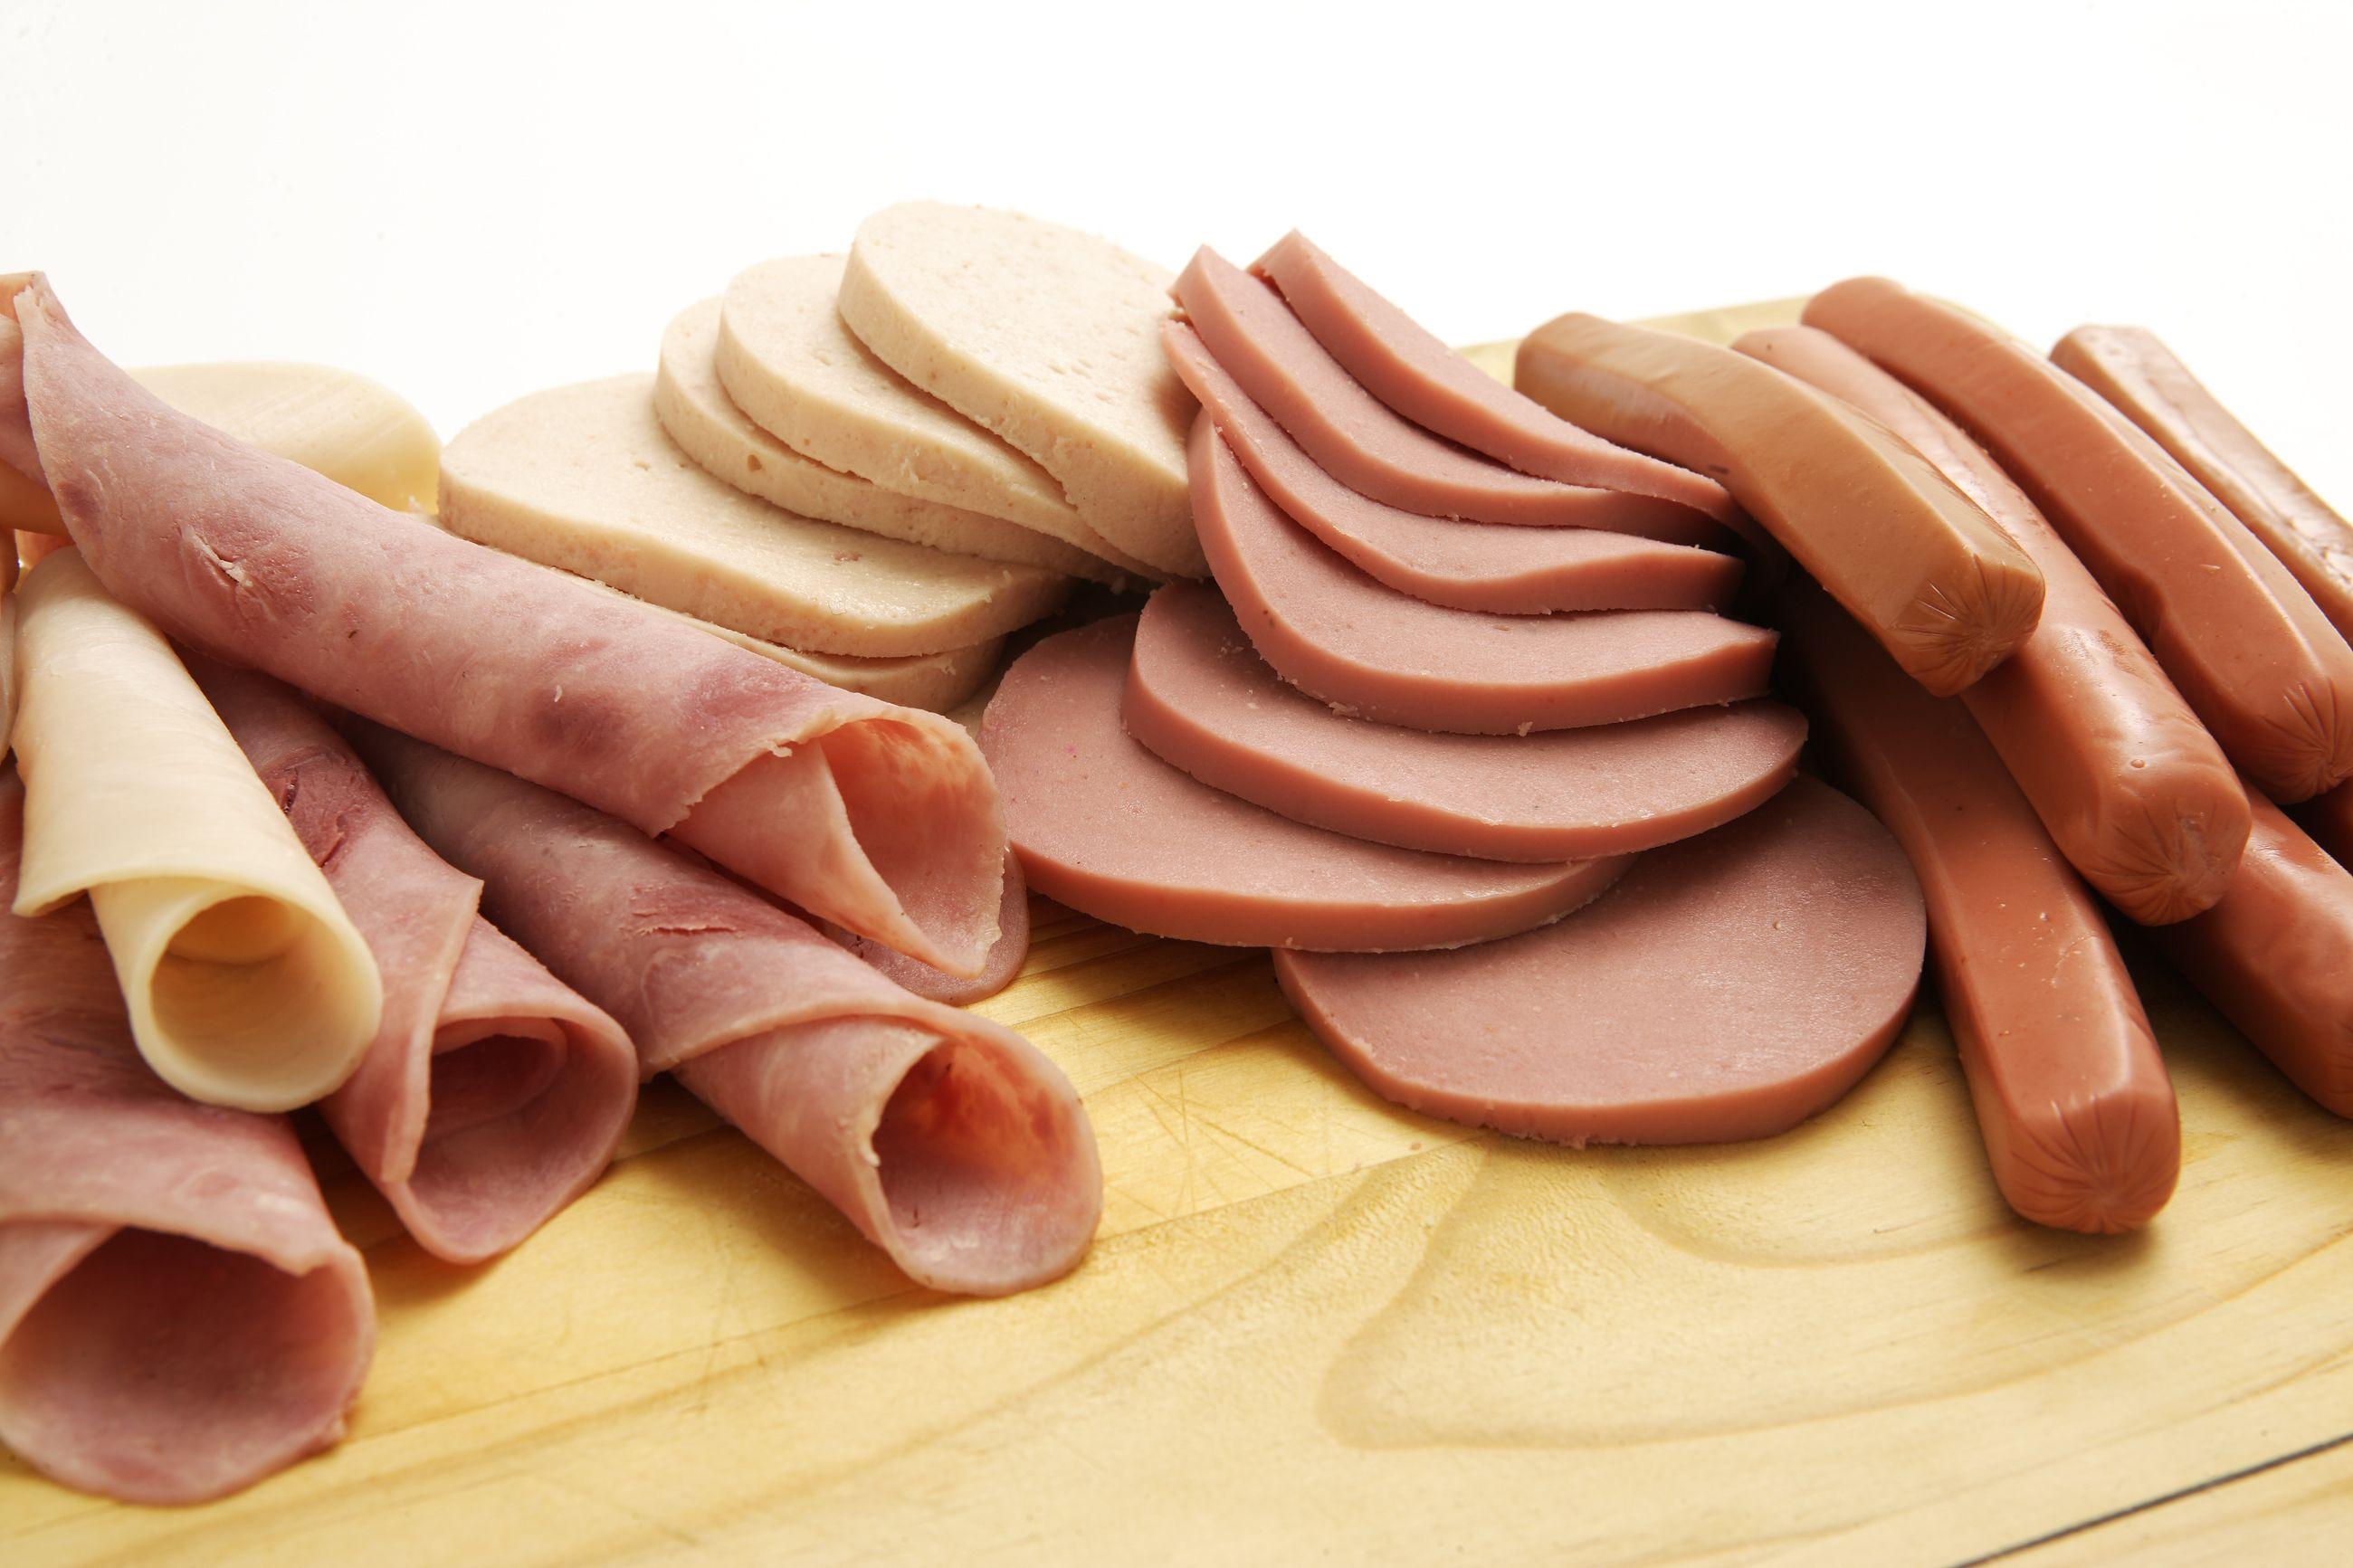 Scientists say not all processed meats could cause cancer - but ...